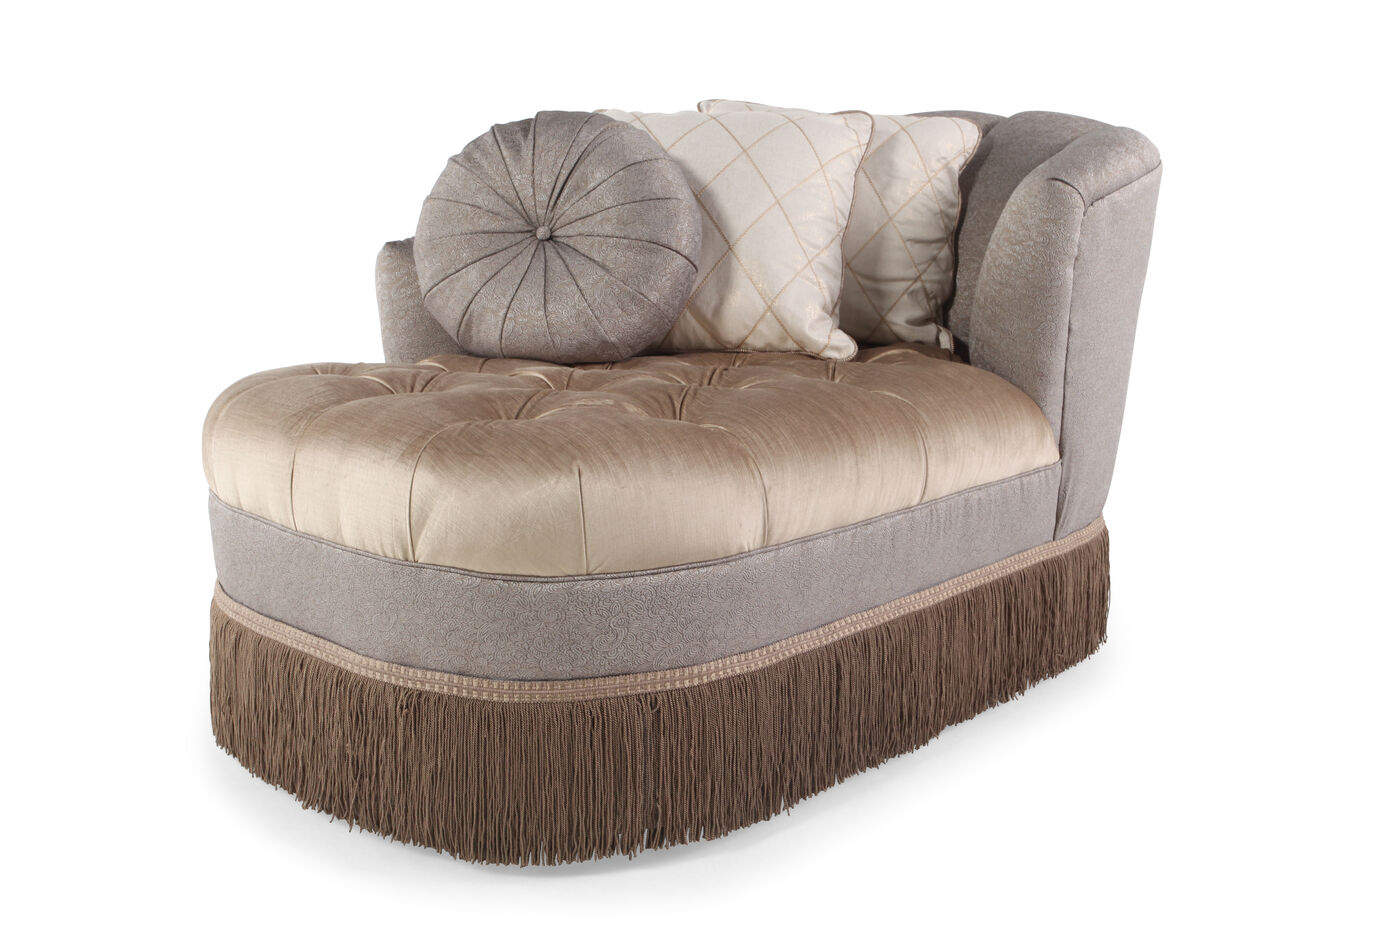 Fringed Skirt Traditional Tufted Chaise Nbsp In Champagne